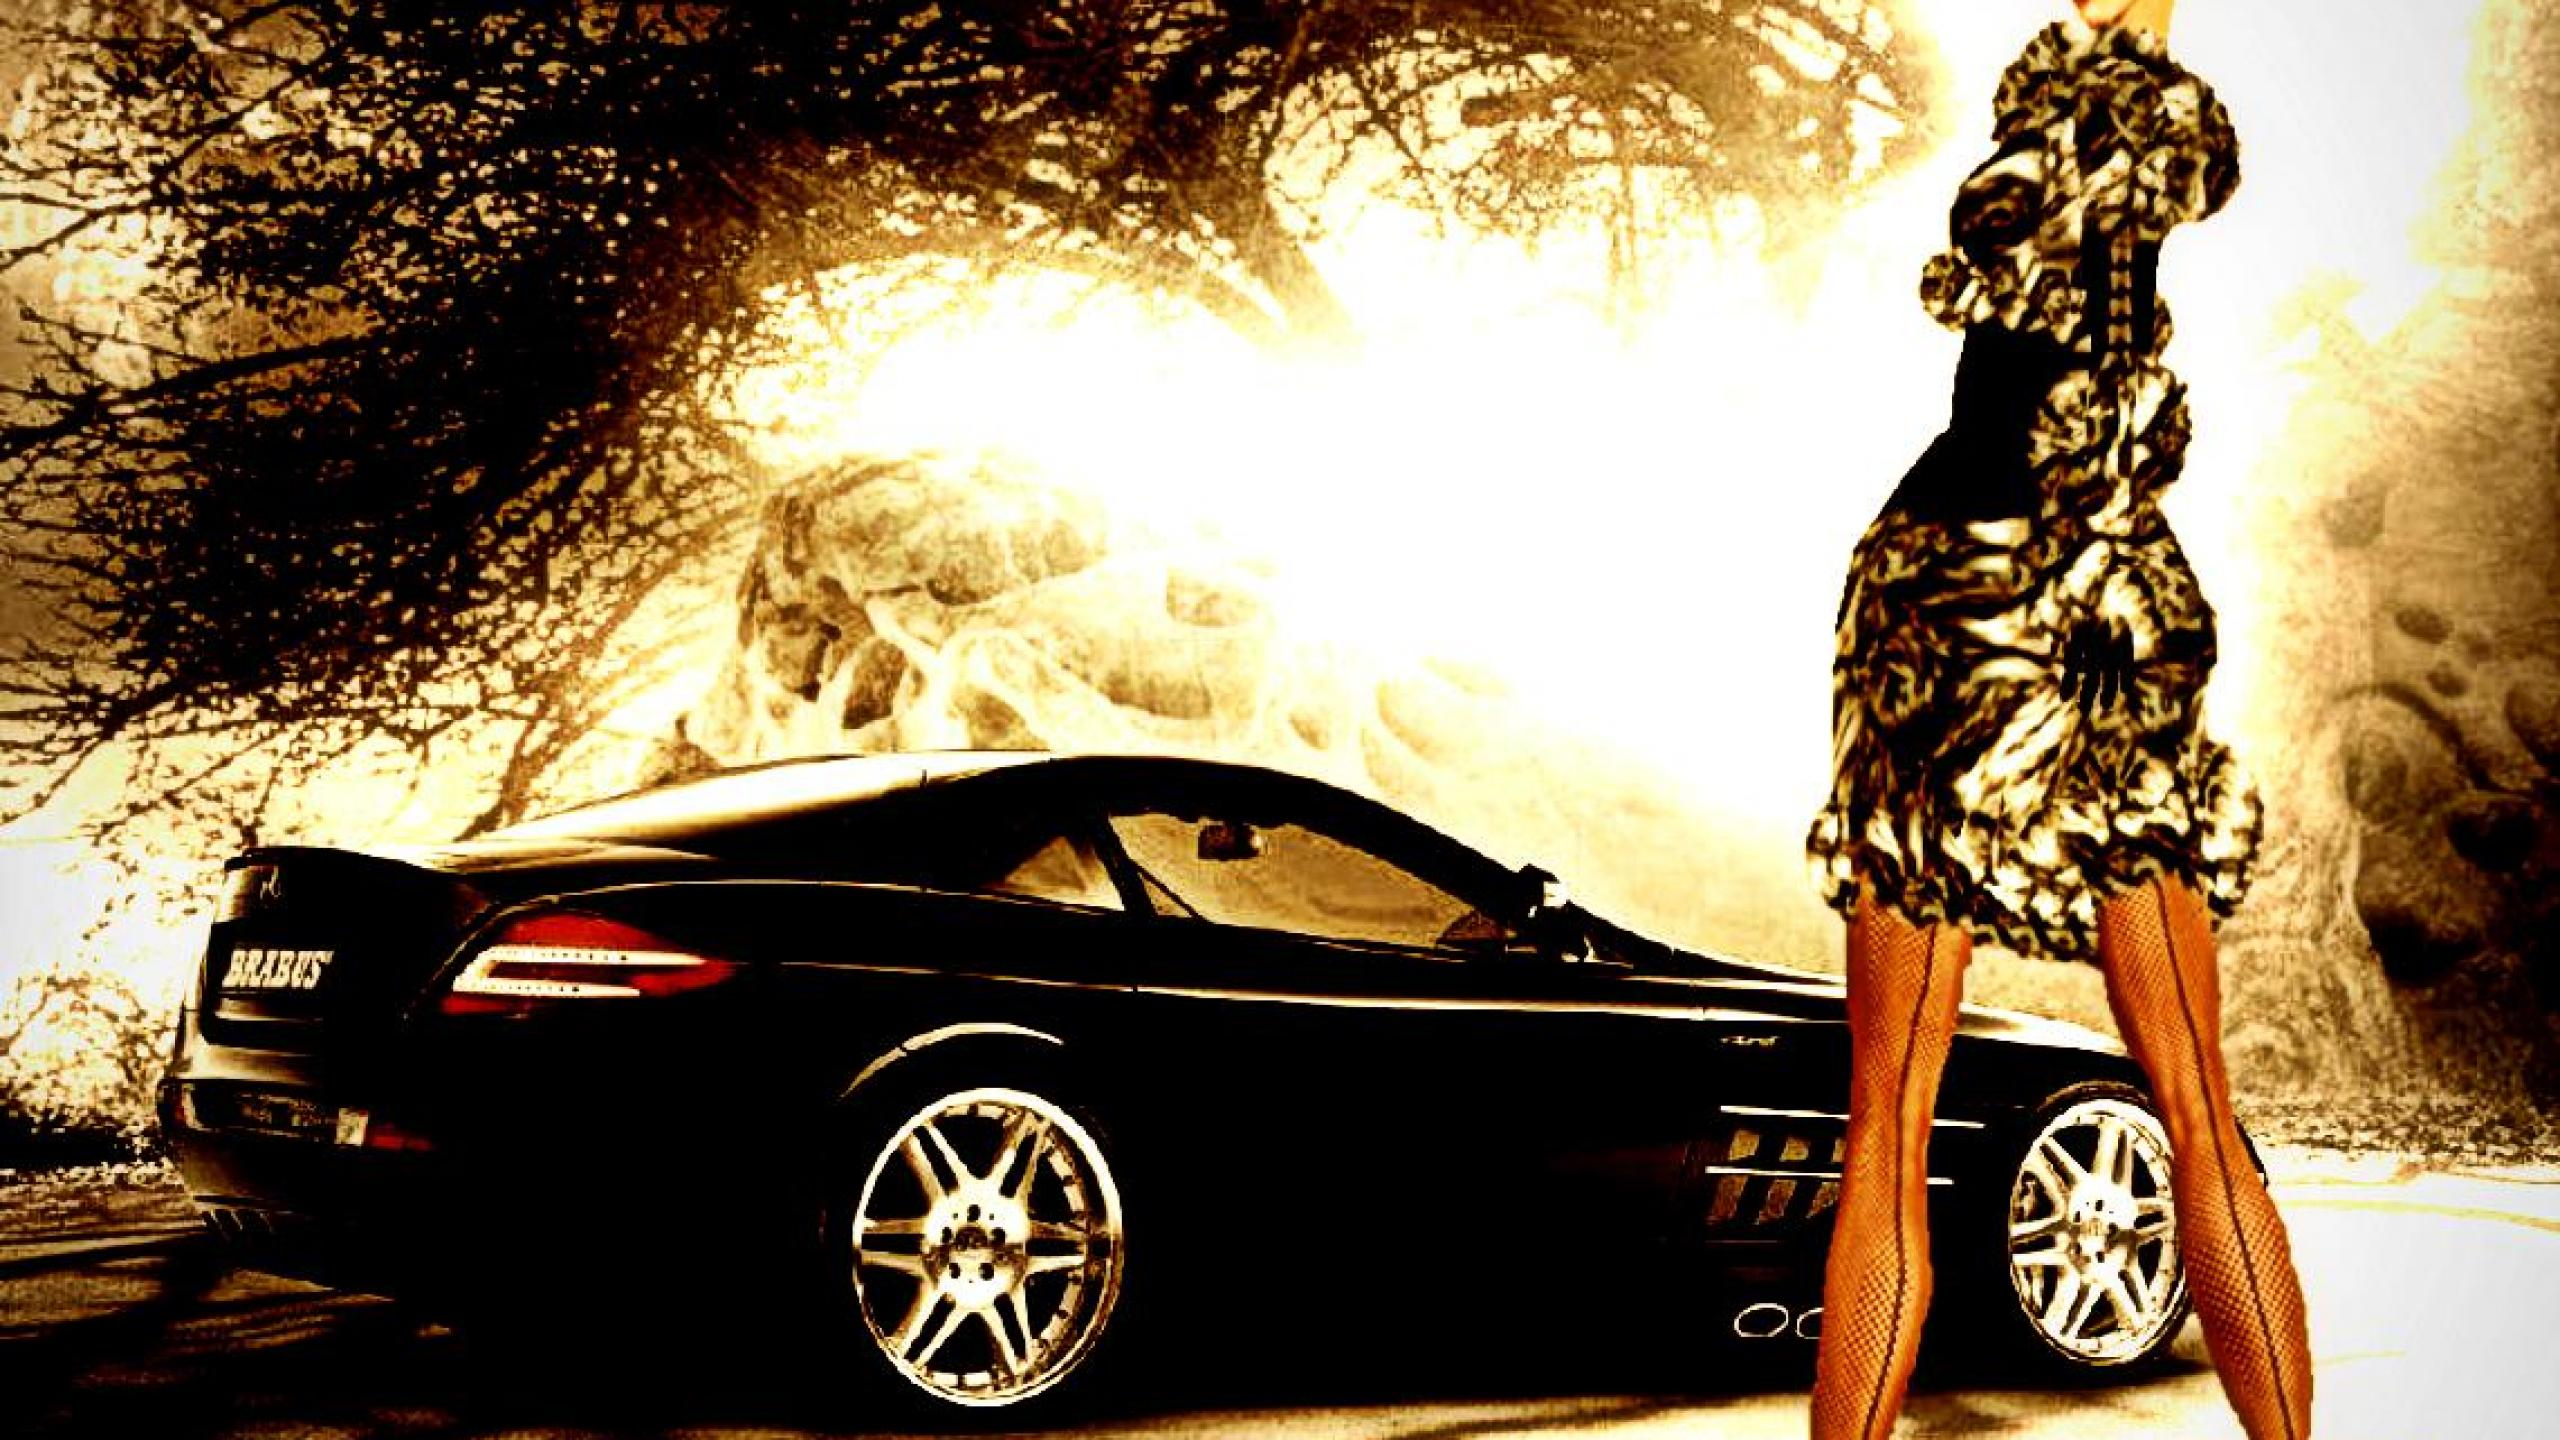 Cars Wallpapers: Fantasy Car Wallpapers High Quality